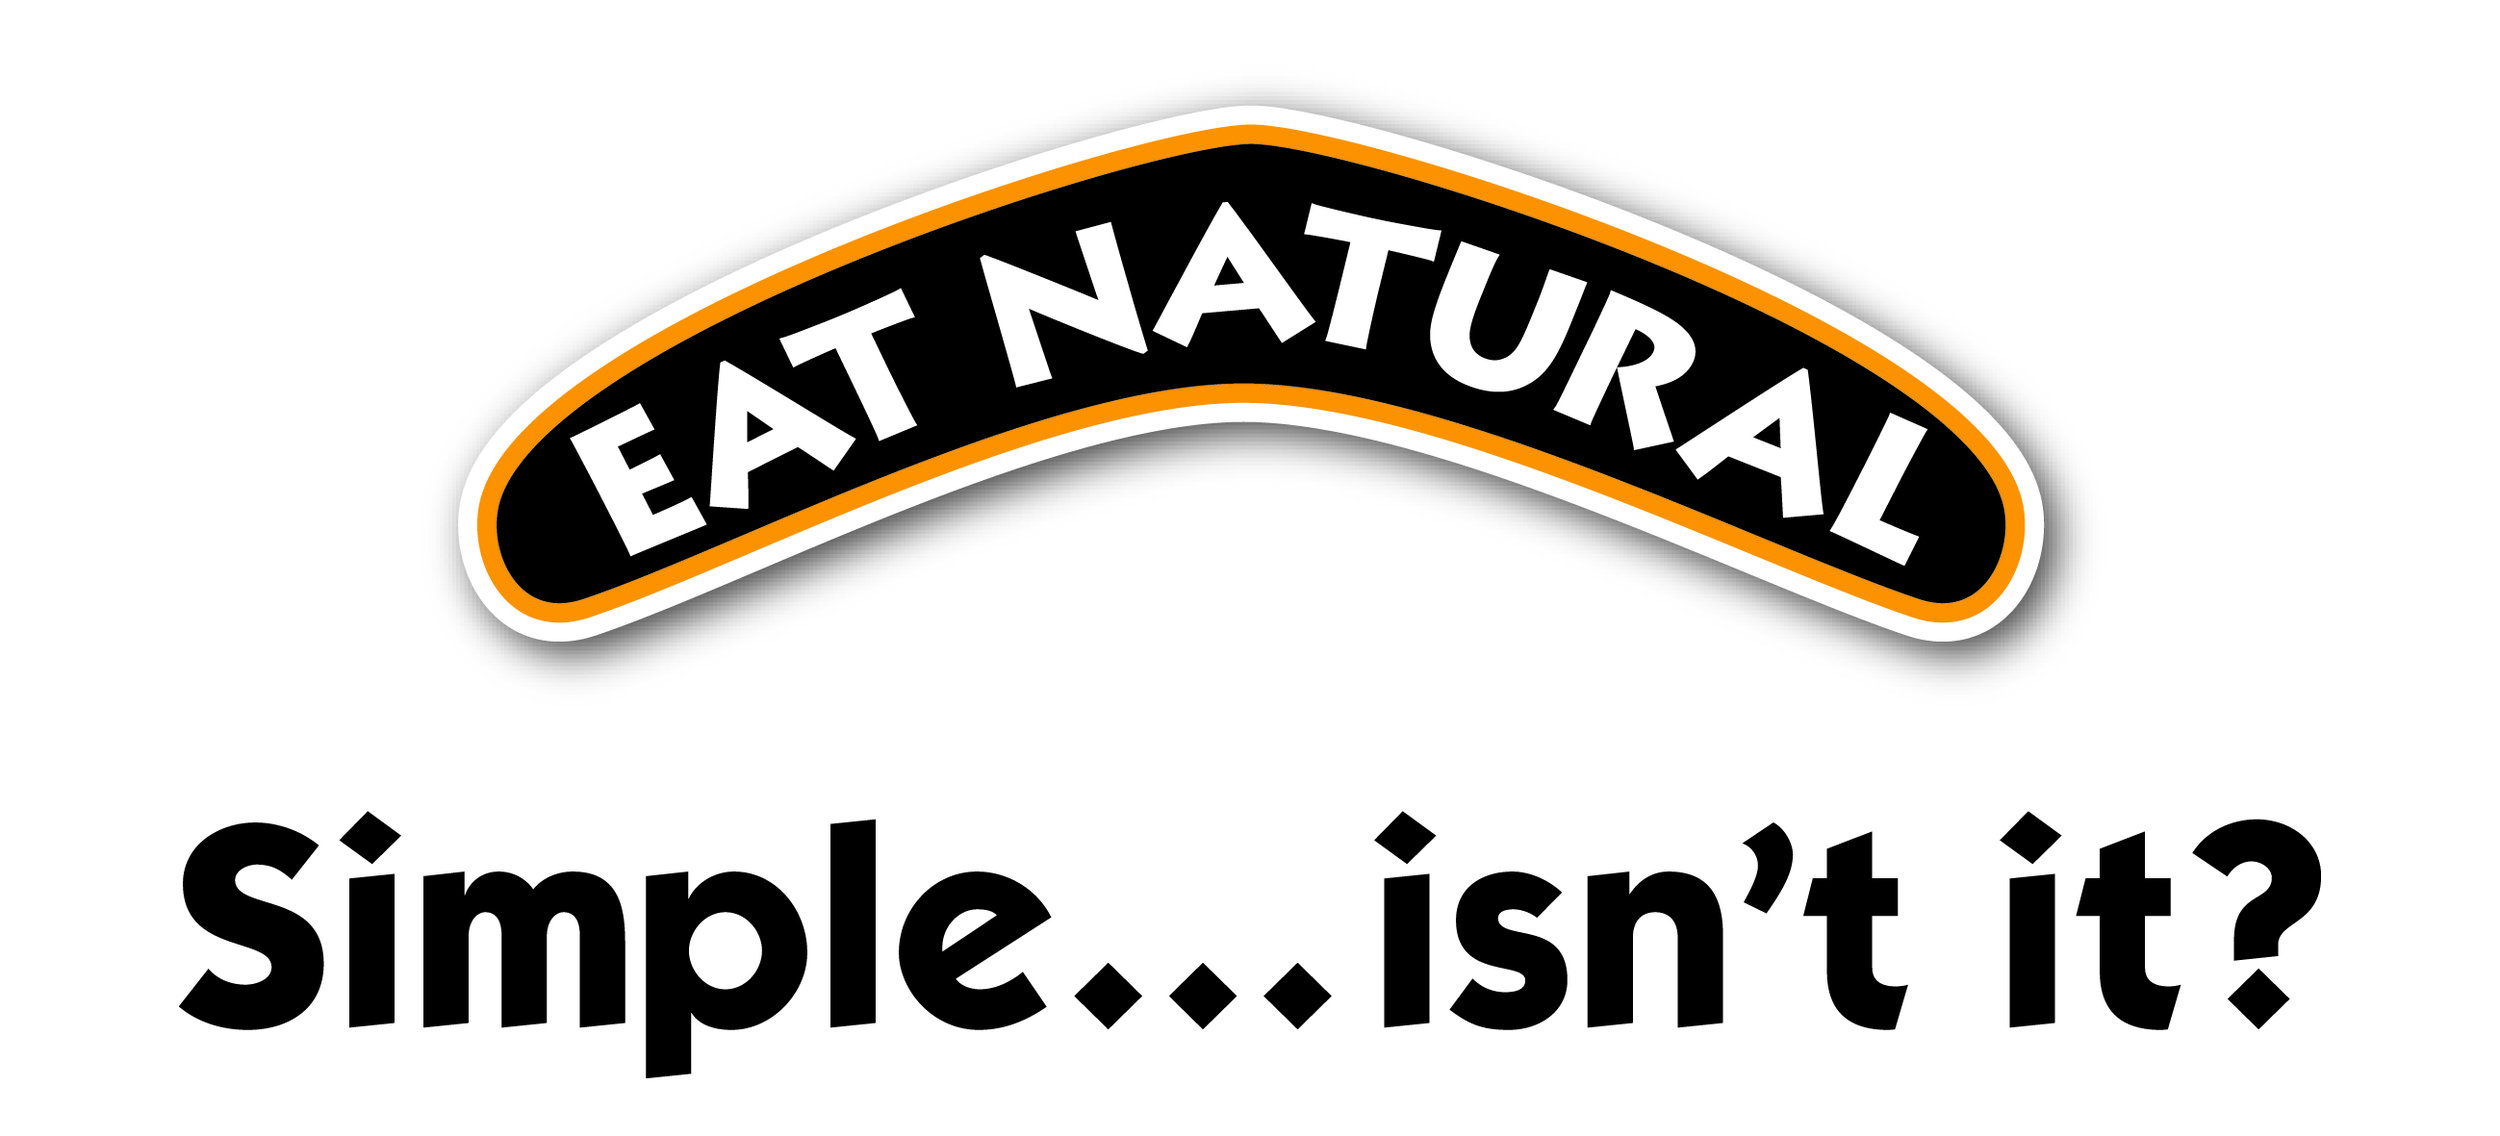 Eat Natural logo - for sharing.jpg